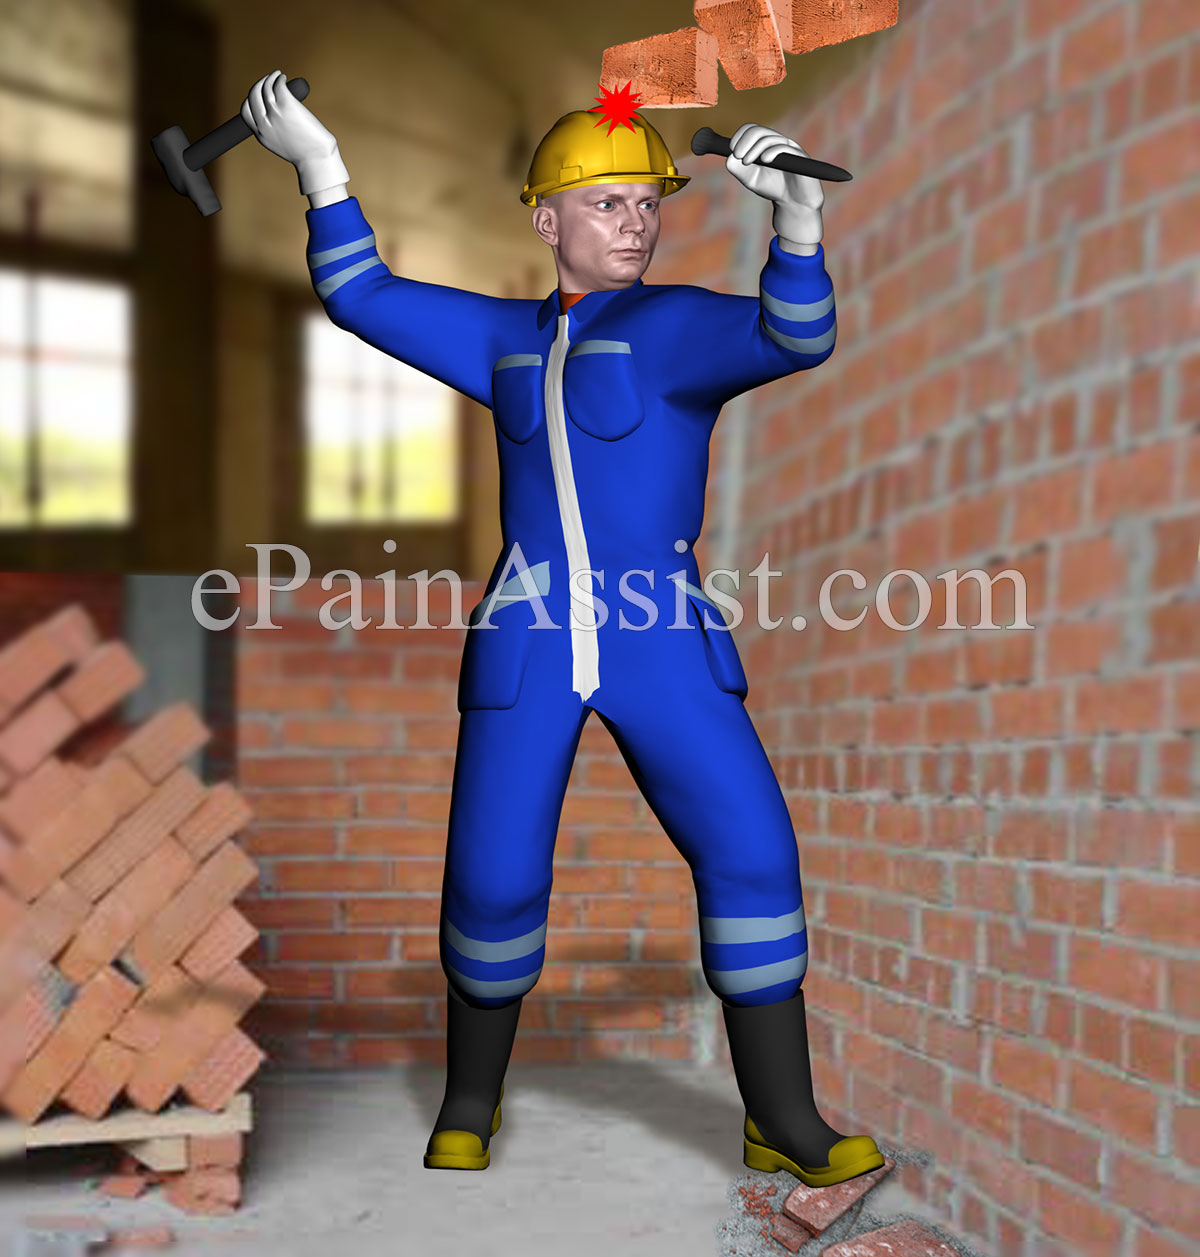 Workplace accidents or occupational accidents